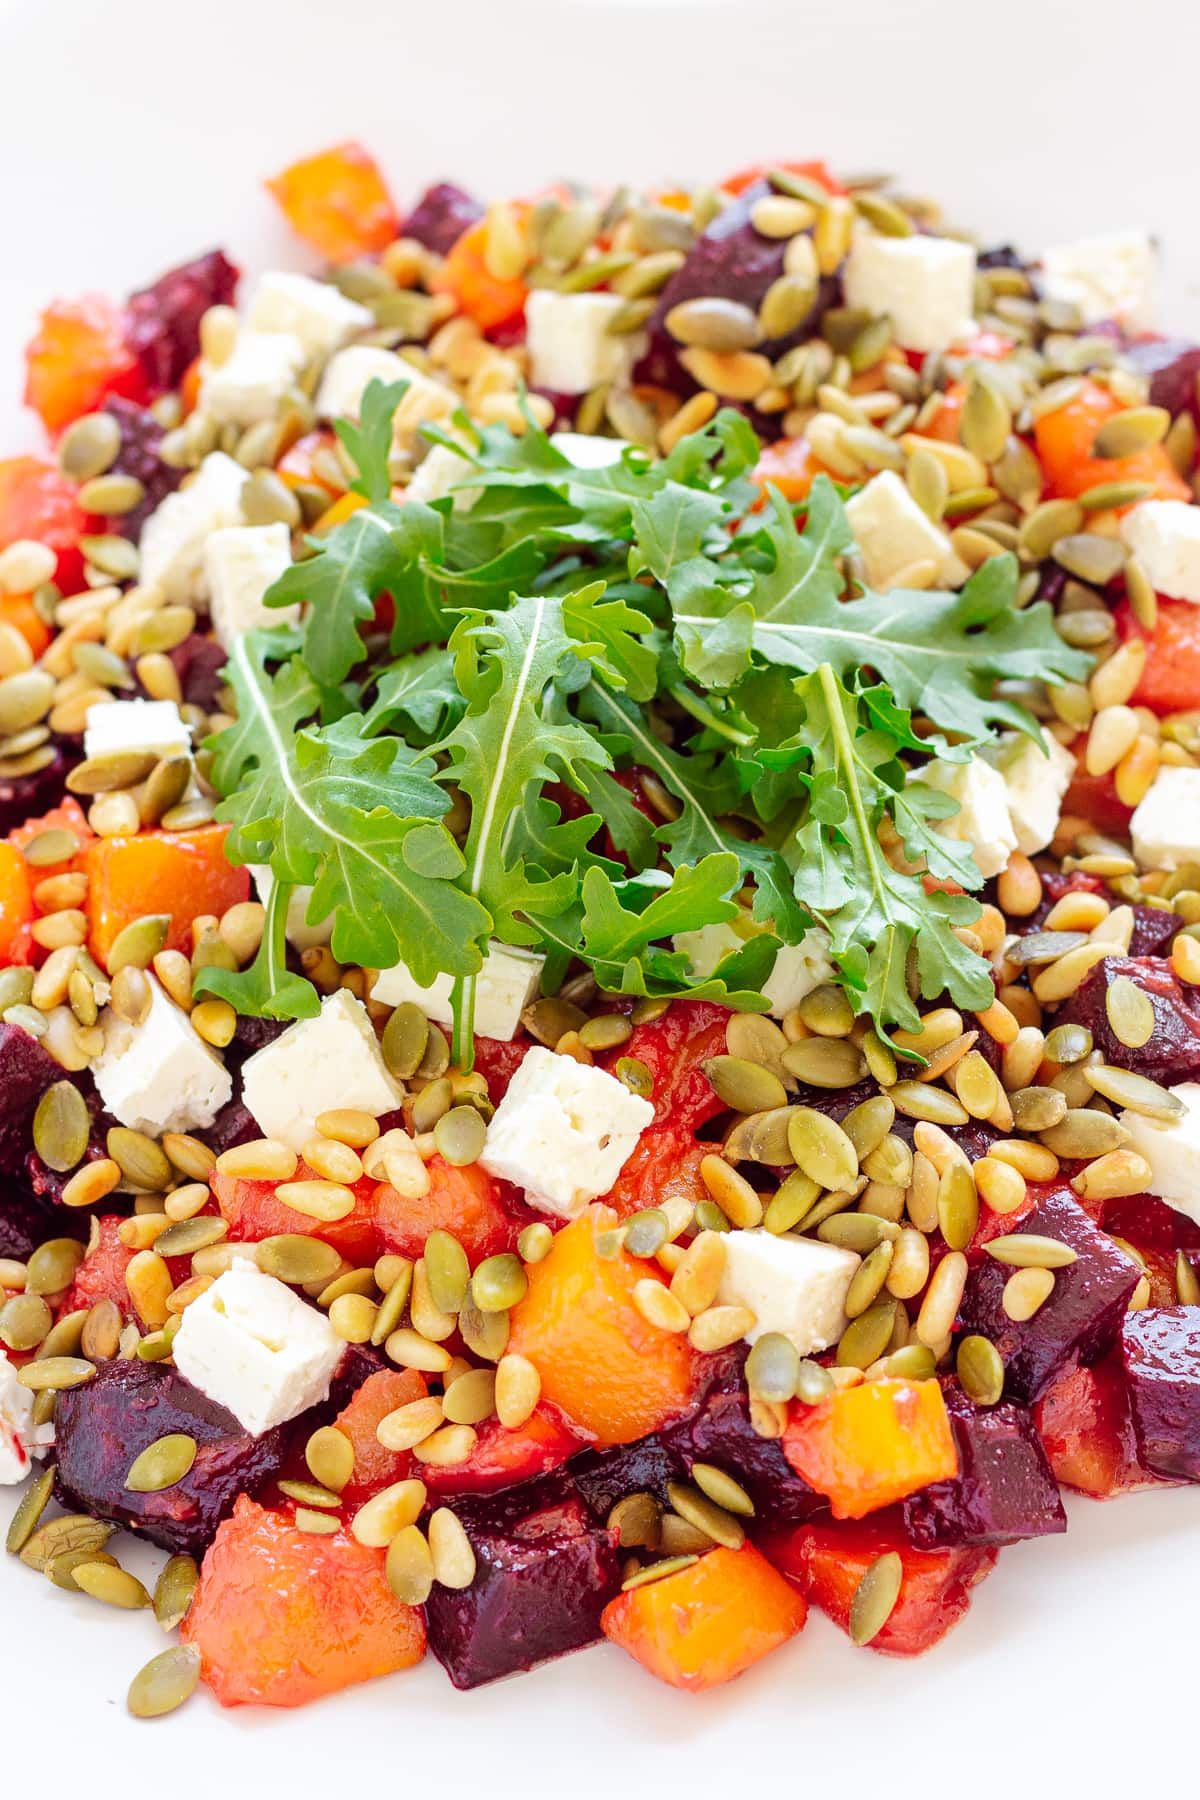 Close up photo of roasted pumpkin and beetroot salad topped with feta cheese, pine nuts, pepitas and arugula.